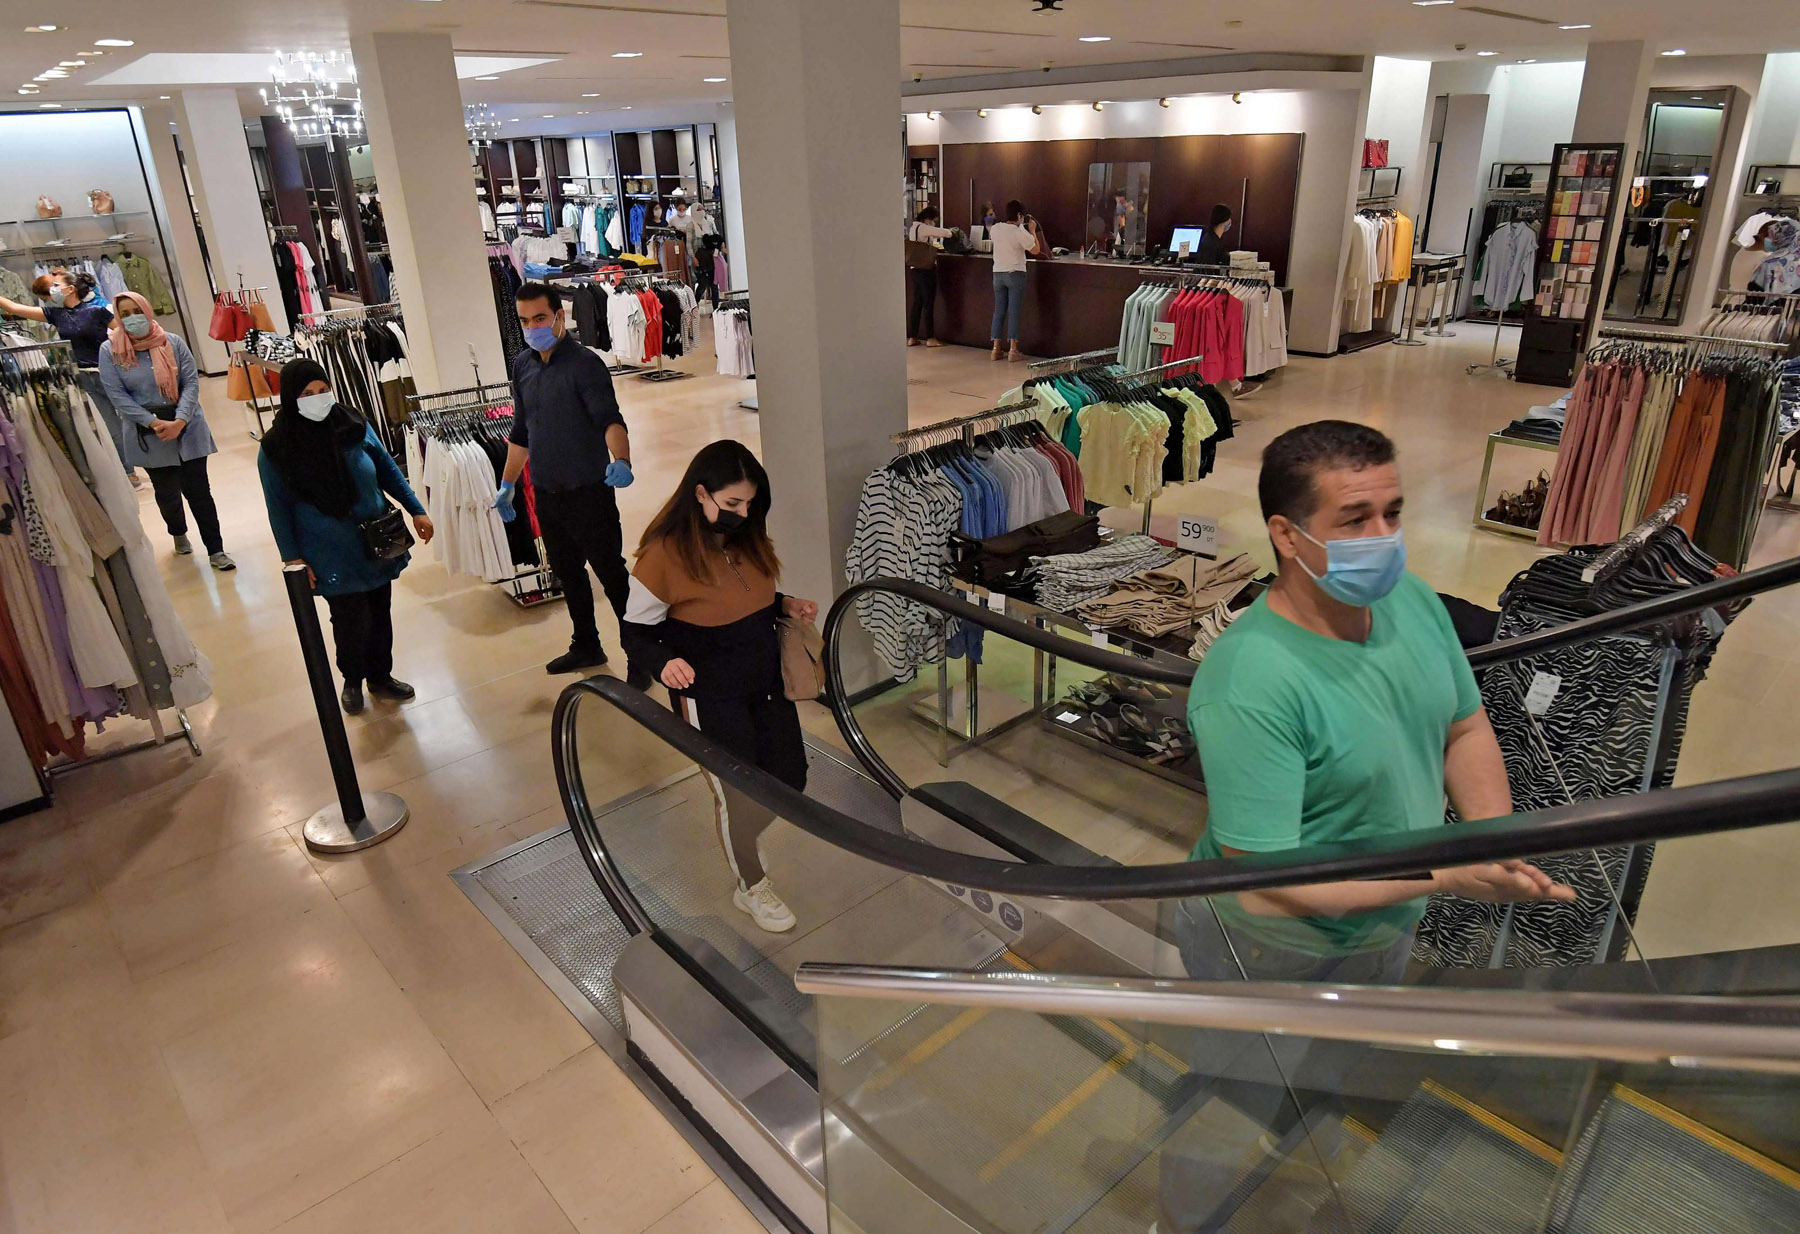 Shoppers, wearing protective face masks, observe a safe distance at a clothing store in the Tunisian capital Tunis. (AFP)